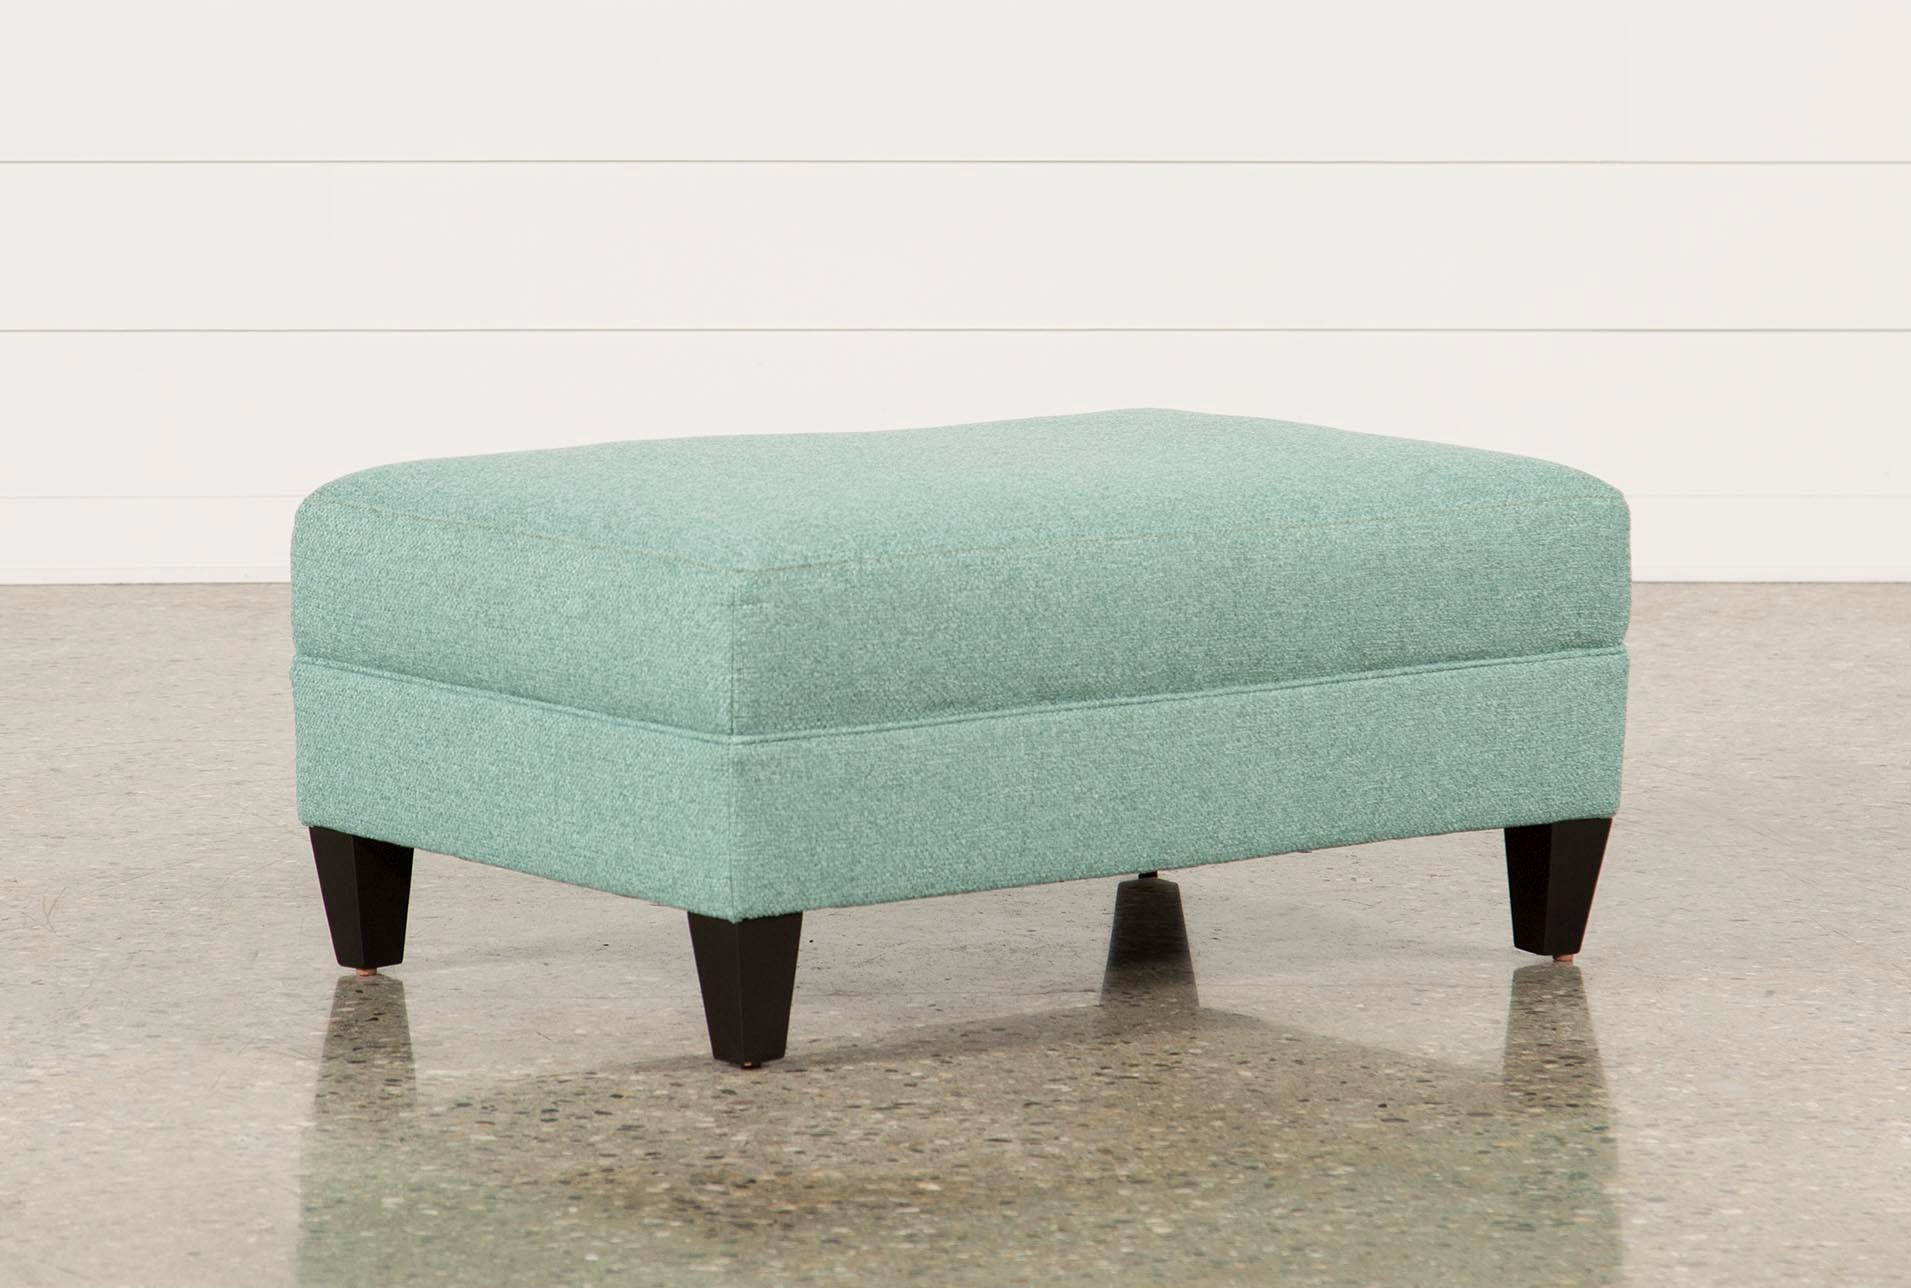 Adler Fabric Small Rectangle Ottoman Qty 1 Has Been Successfully Added To Your Cart